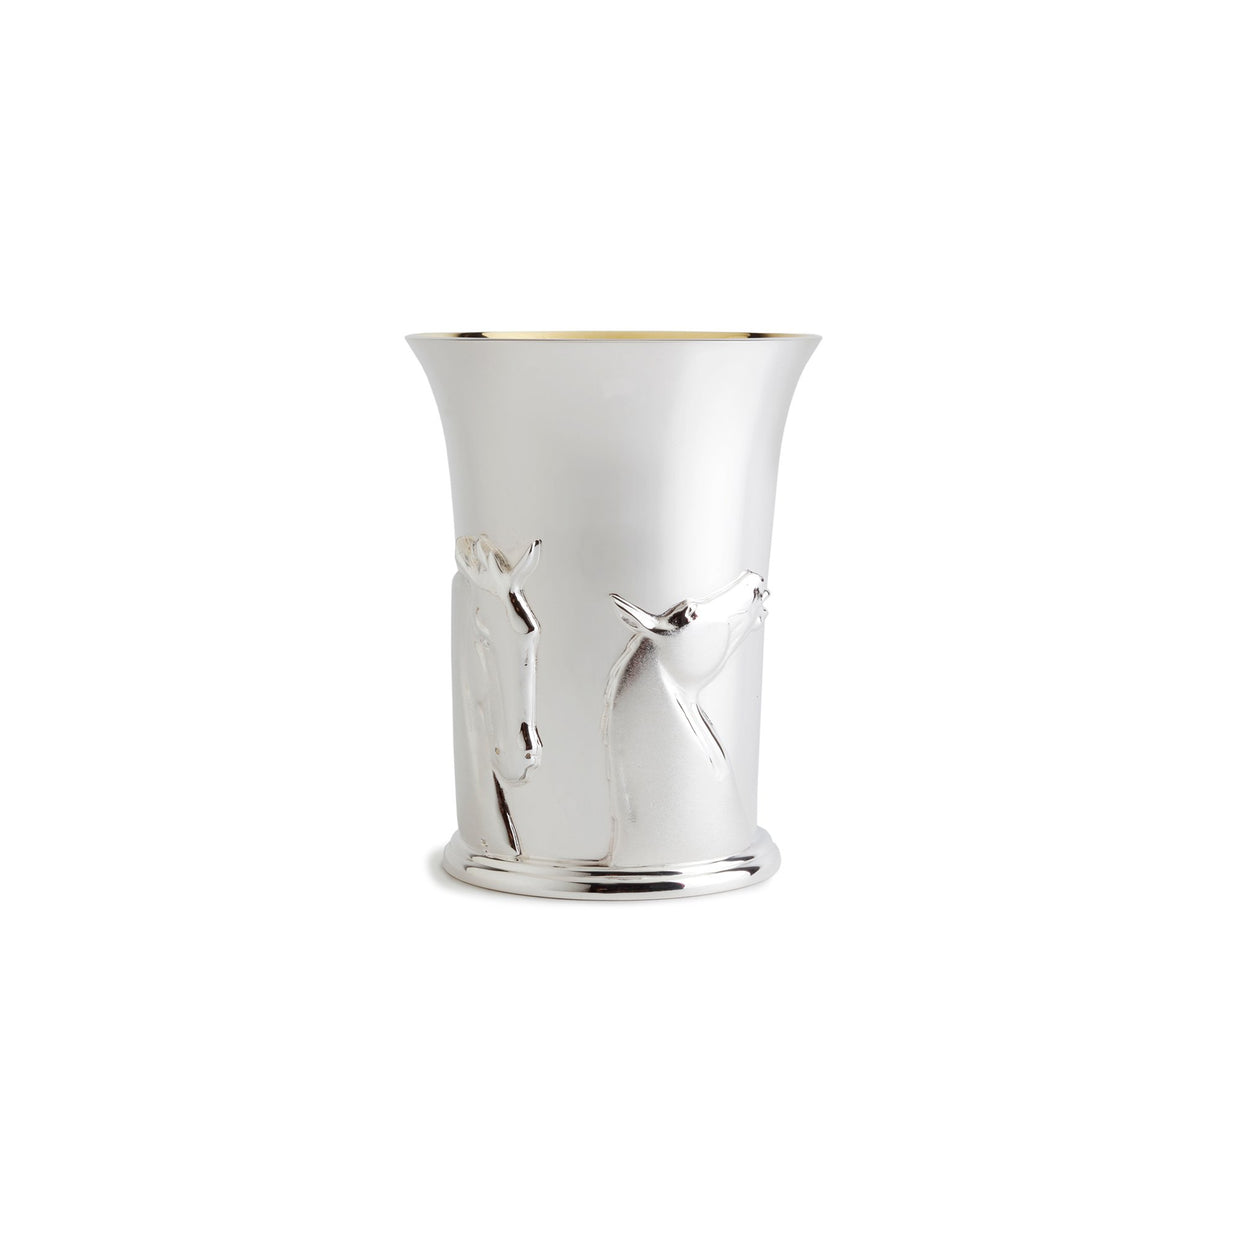 Andy Scott Kelpies Beaker in Sterling Silver-Hamilton & Inches